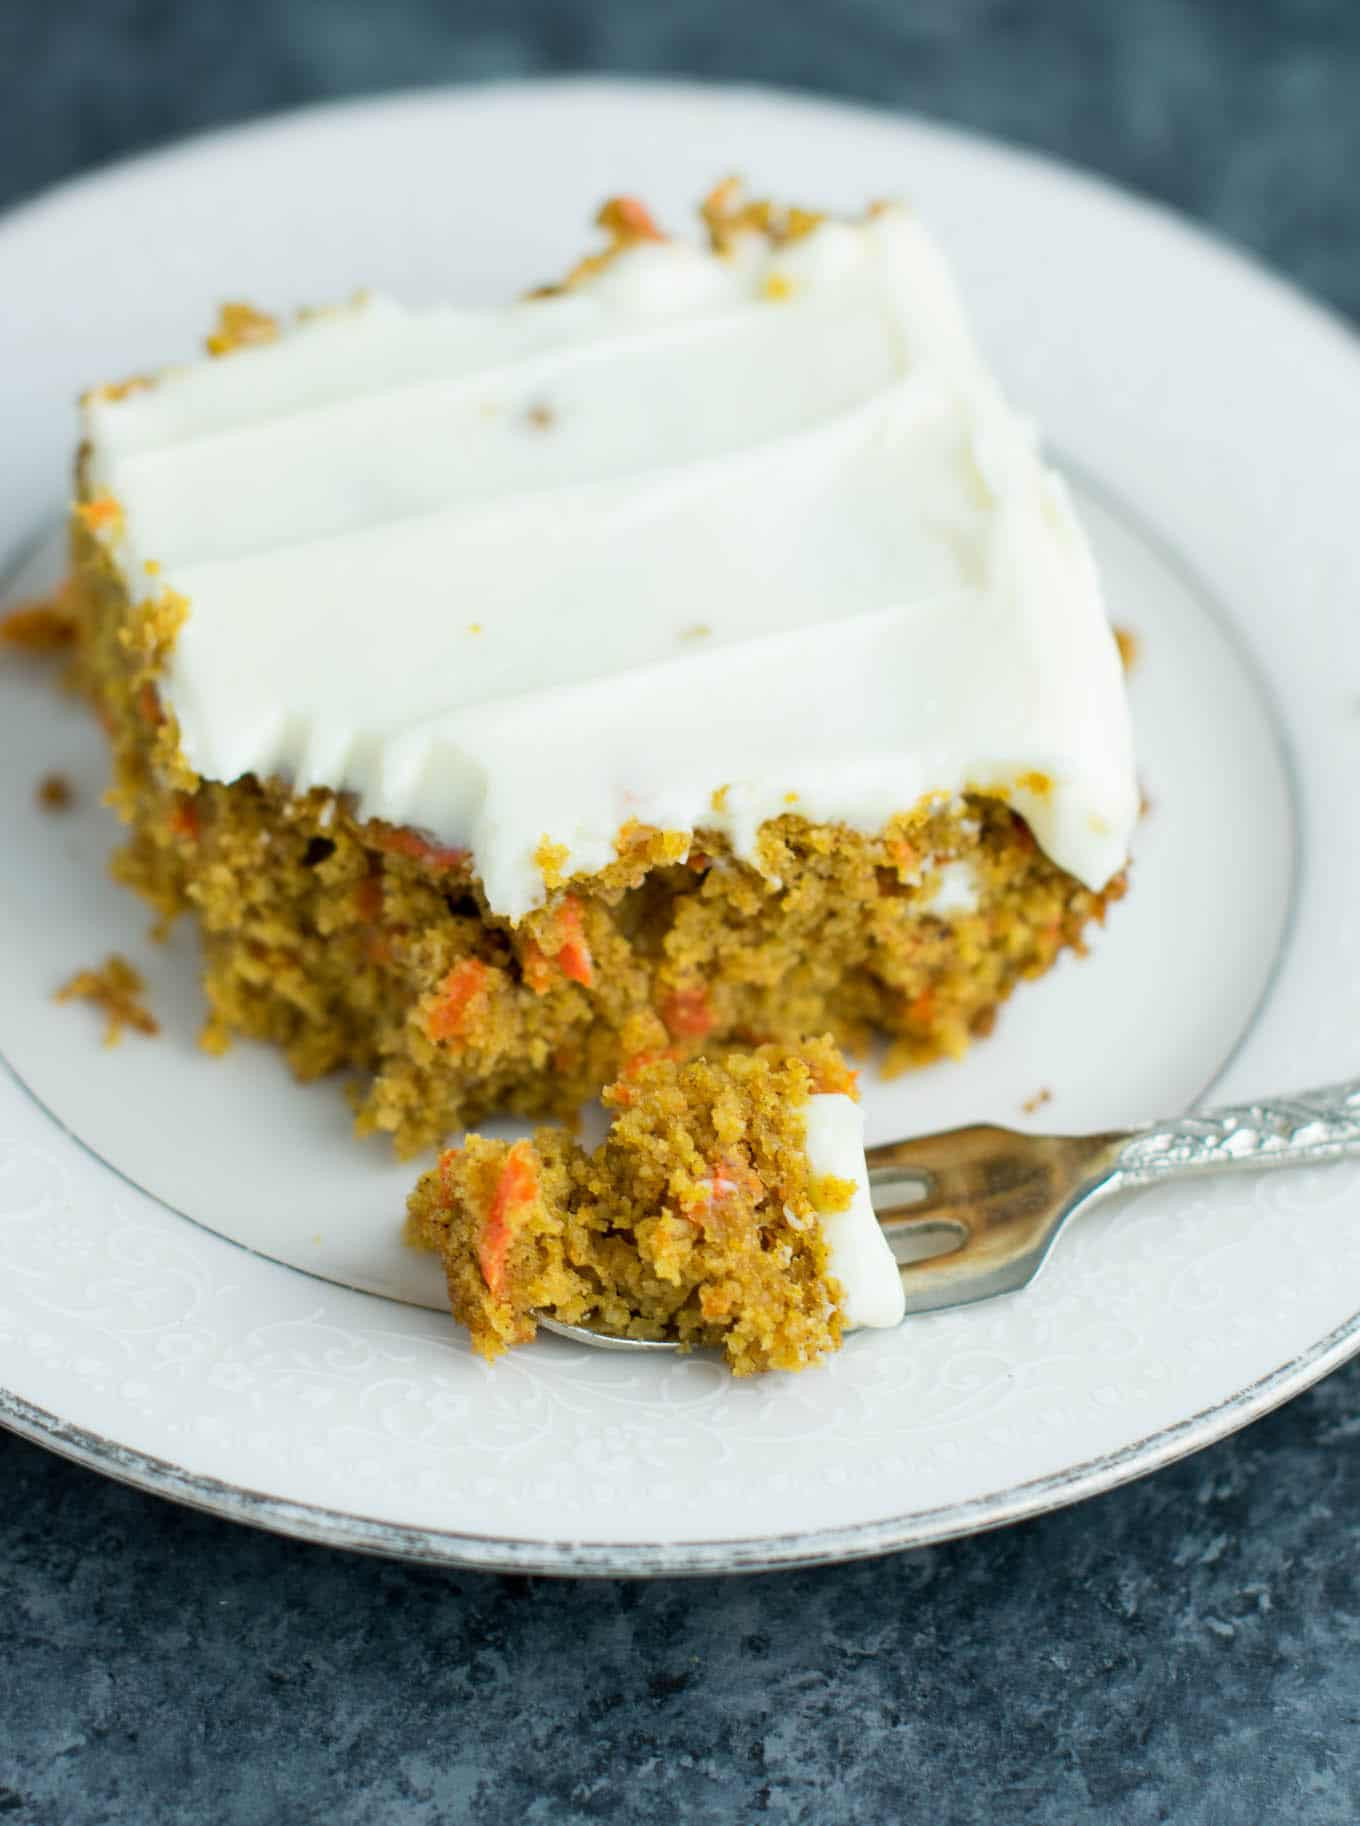 Gluten Free Carrot Cake  Gluten Free Carrot Cake Recipe with cream cheese frosting